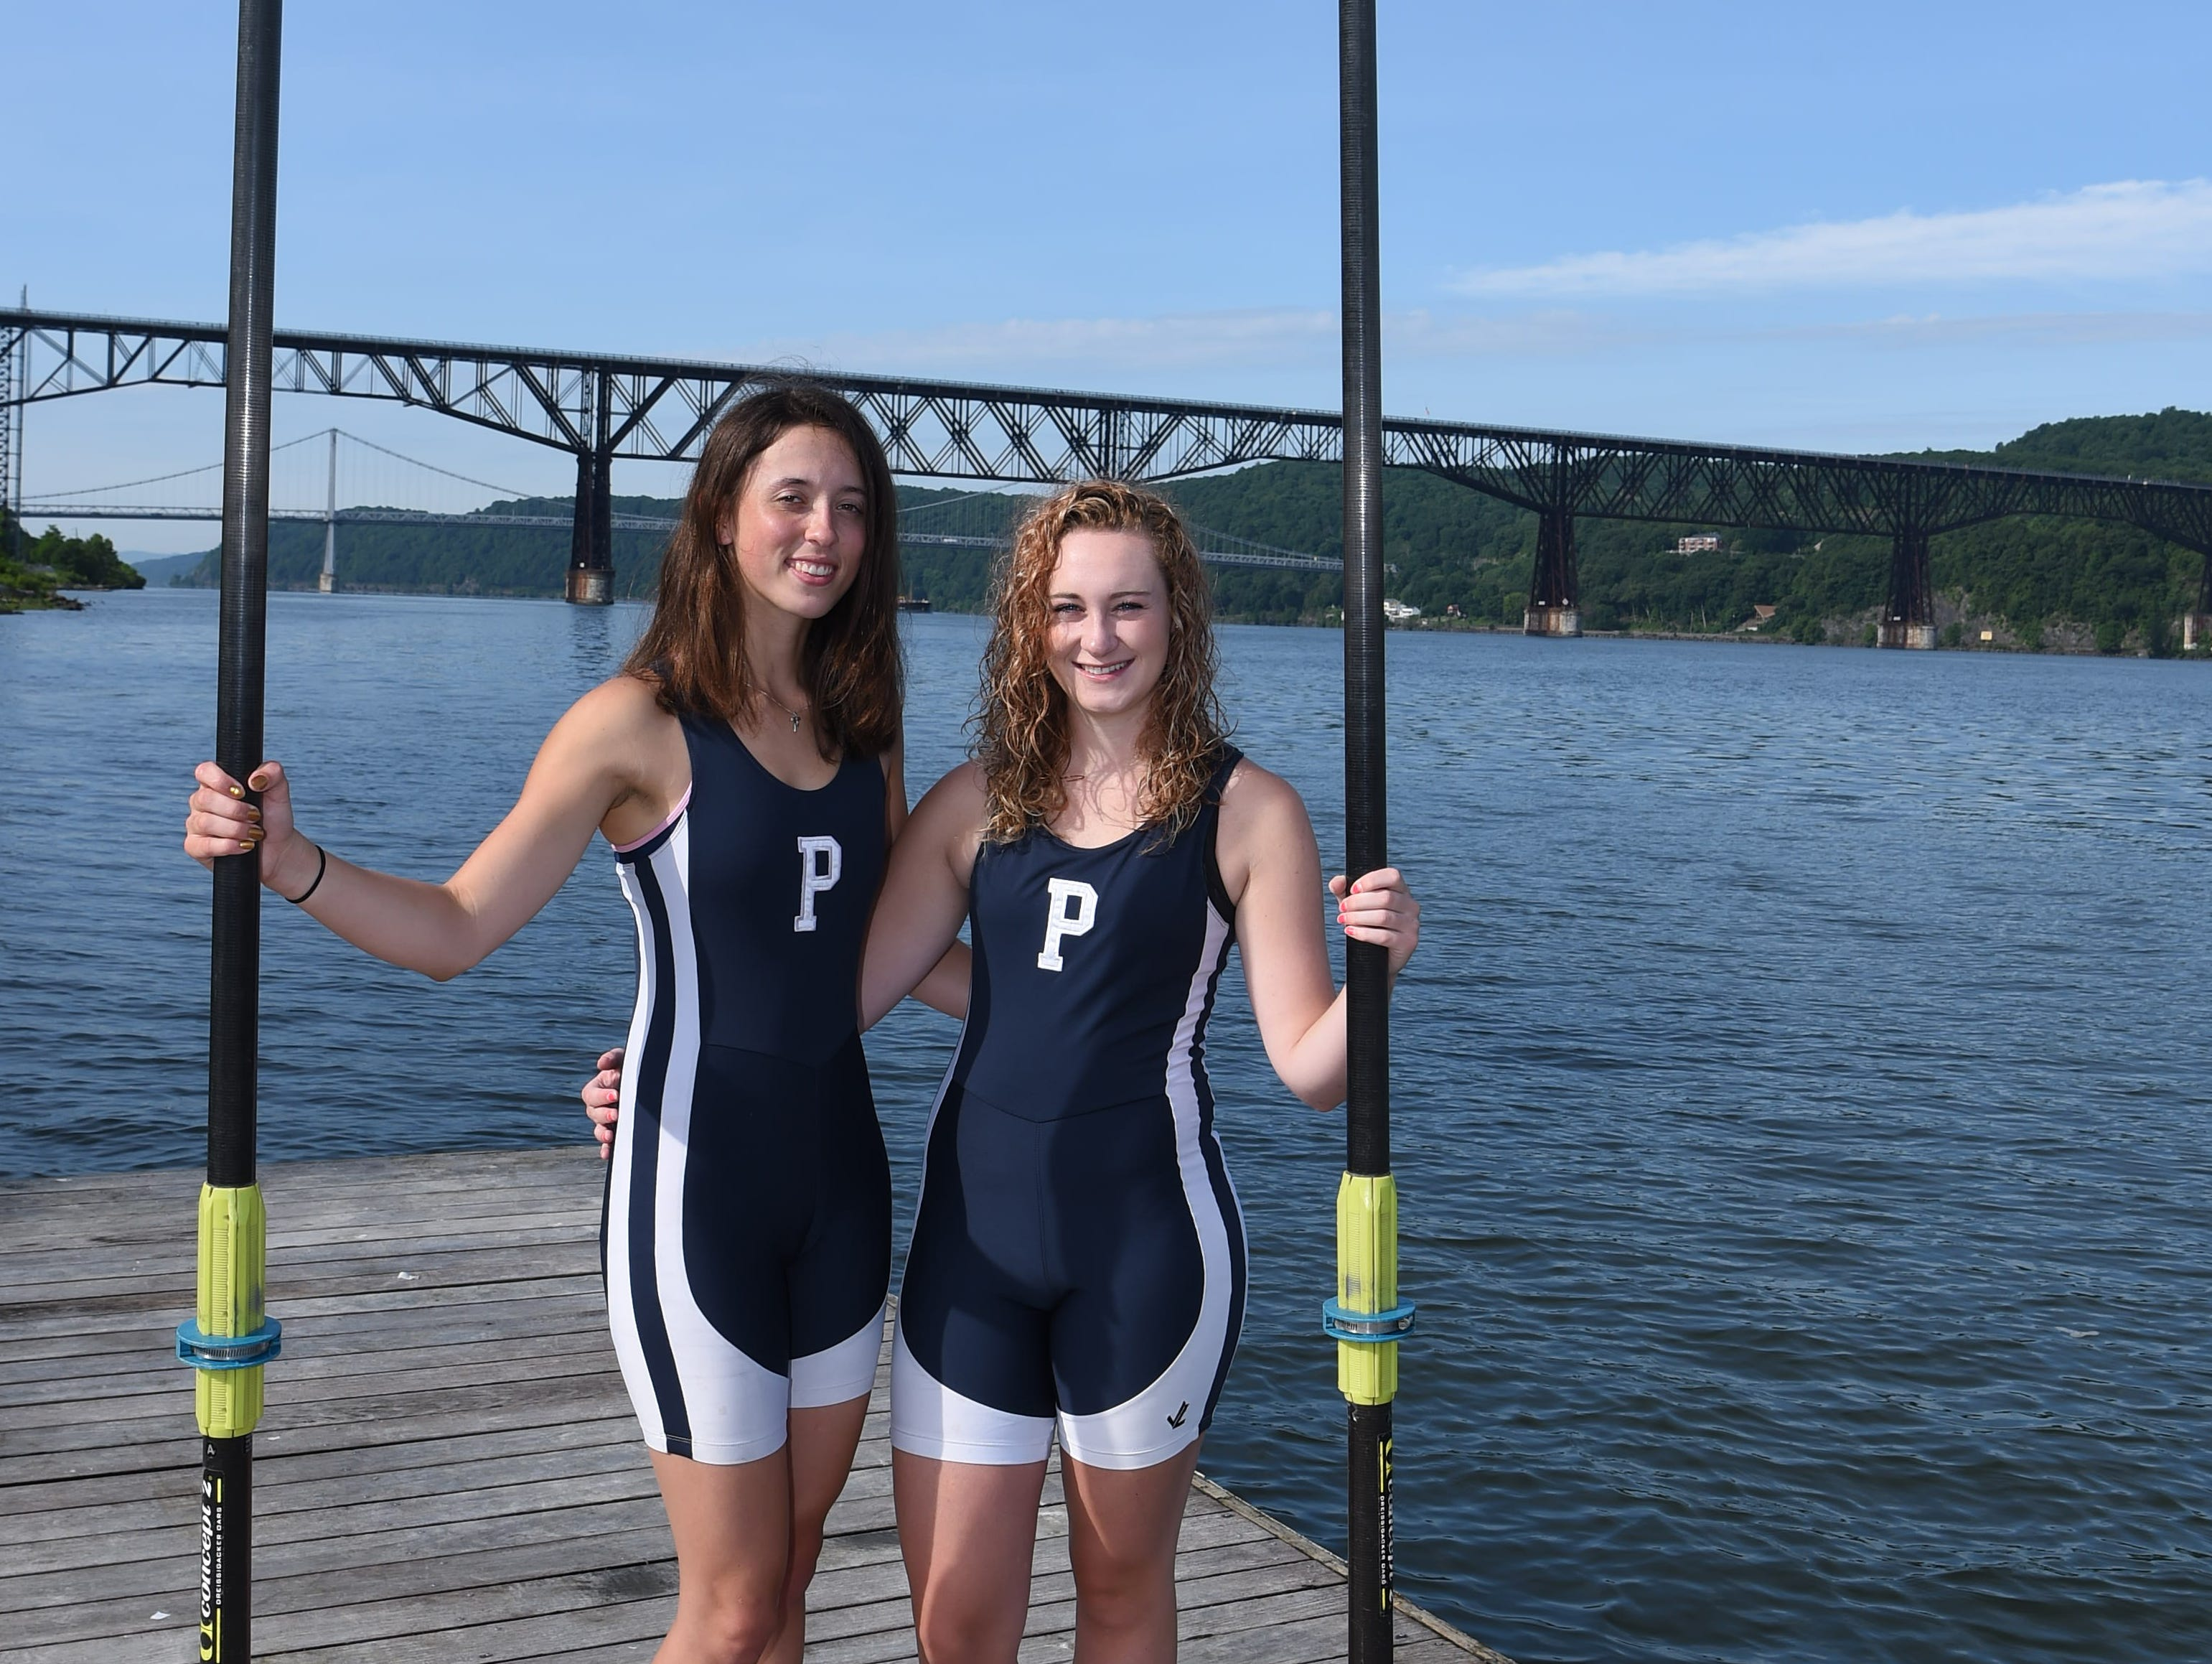 Fiona Mauer, left, 17, and Devin Tully, right, 18, both from the City of Poughkeepsie and graduates of Poughkeepsie High School, pose on the Hudson River. They make up the Girls Crew Boat of the Year.